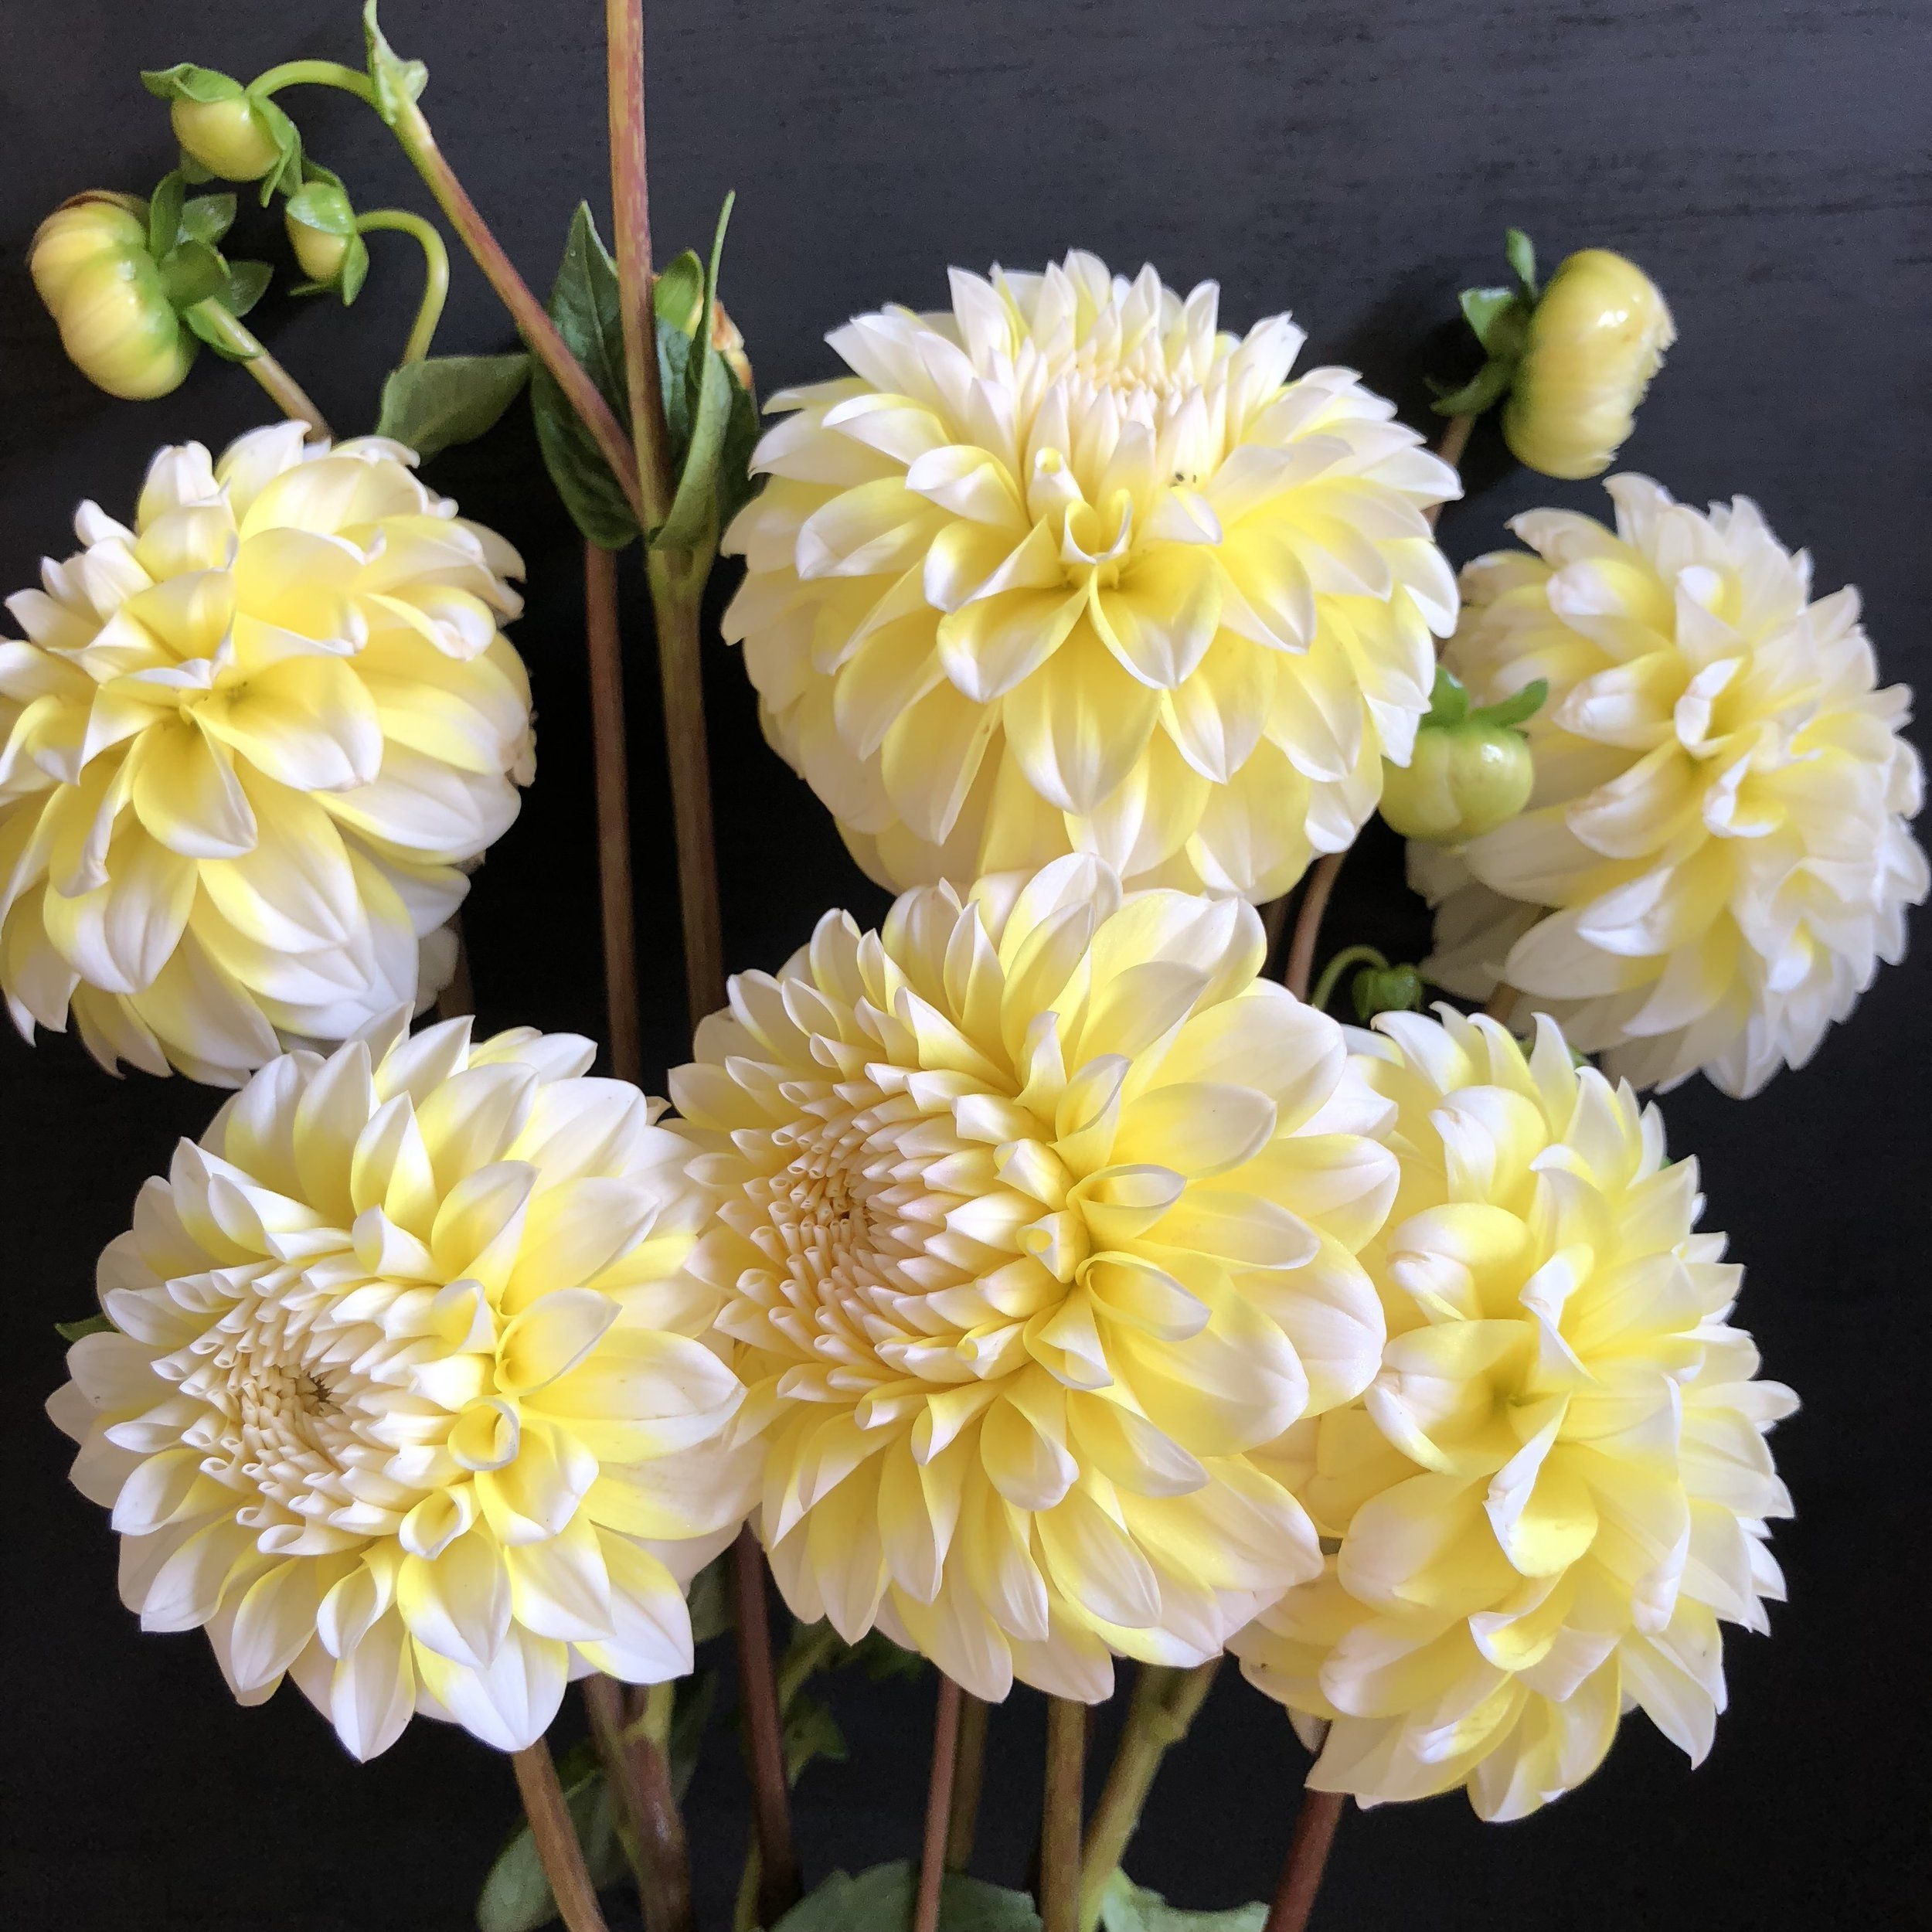 Dahlia Ova Jo Goldenrod Gardens Dahlia Flower Farmer Bohemian Wedding Flowers